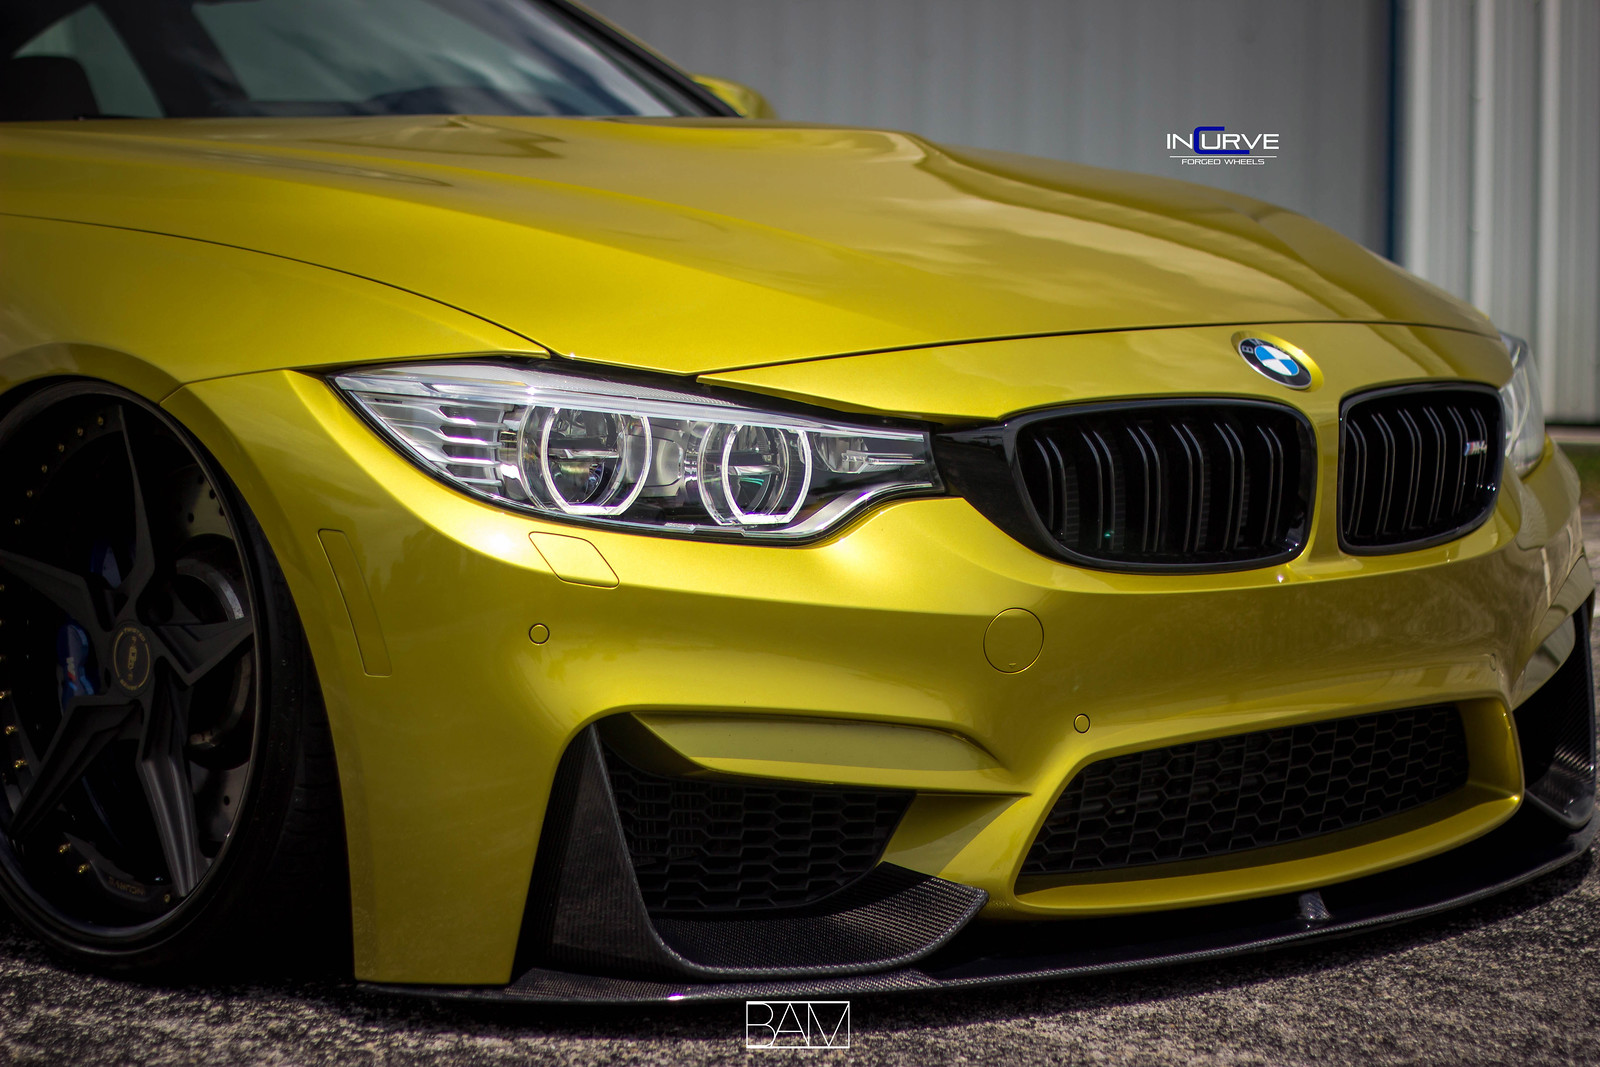 Fs Modded Amp Bagged Bmw M4 Airlift Incurve Wheels